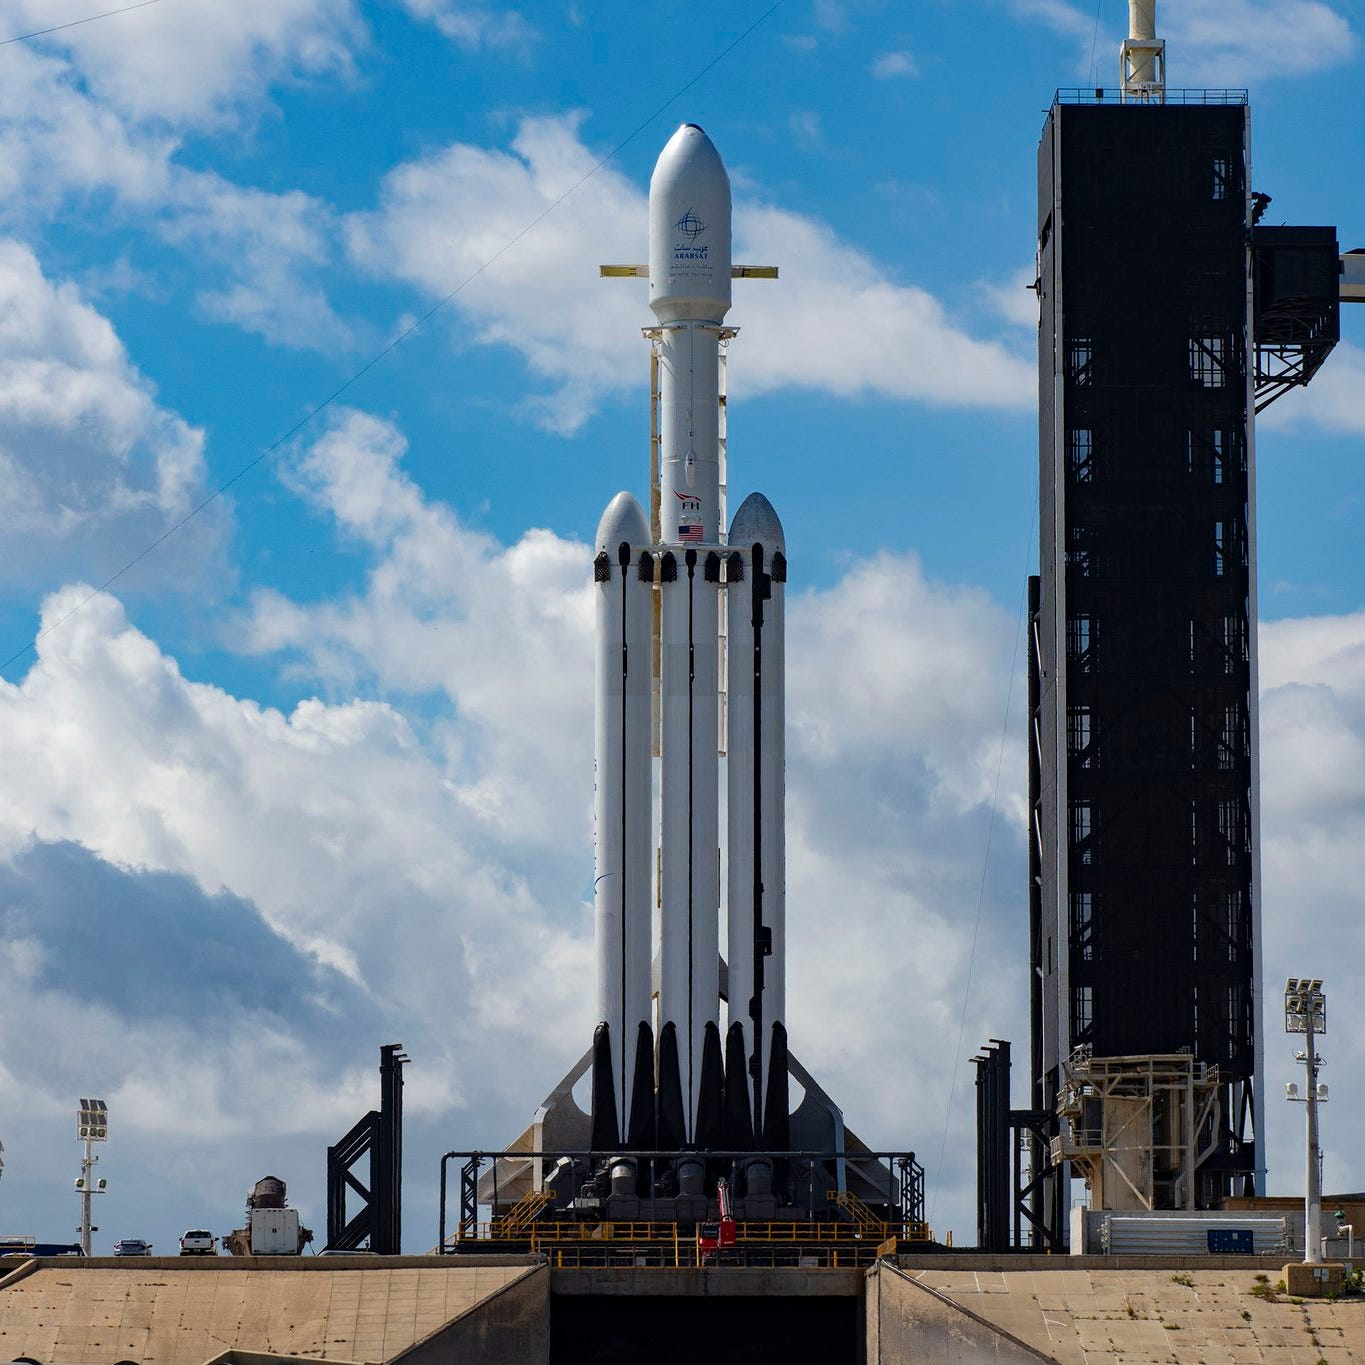 Live: SpaceX set to launch Falcon Heavy rocket from Kennedy Space Center